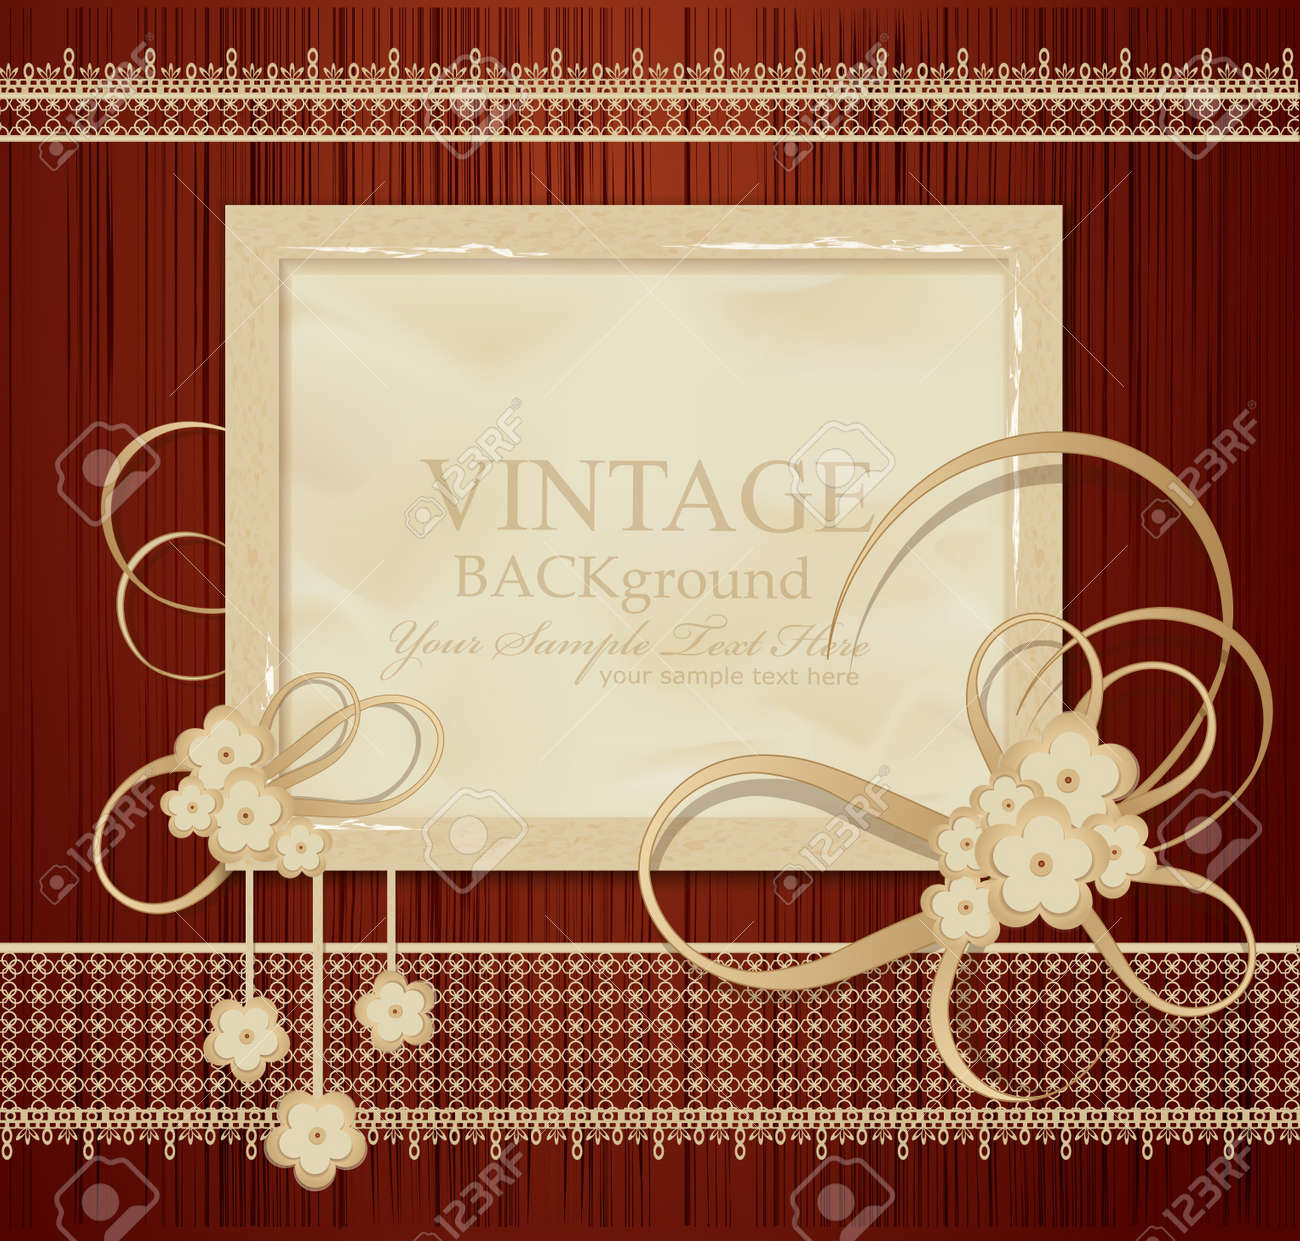 congratulation vintage background with ribbons, flowers, lace on wood Stock Vector - 9157345